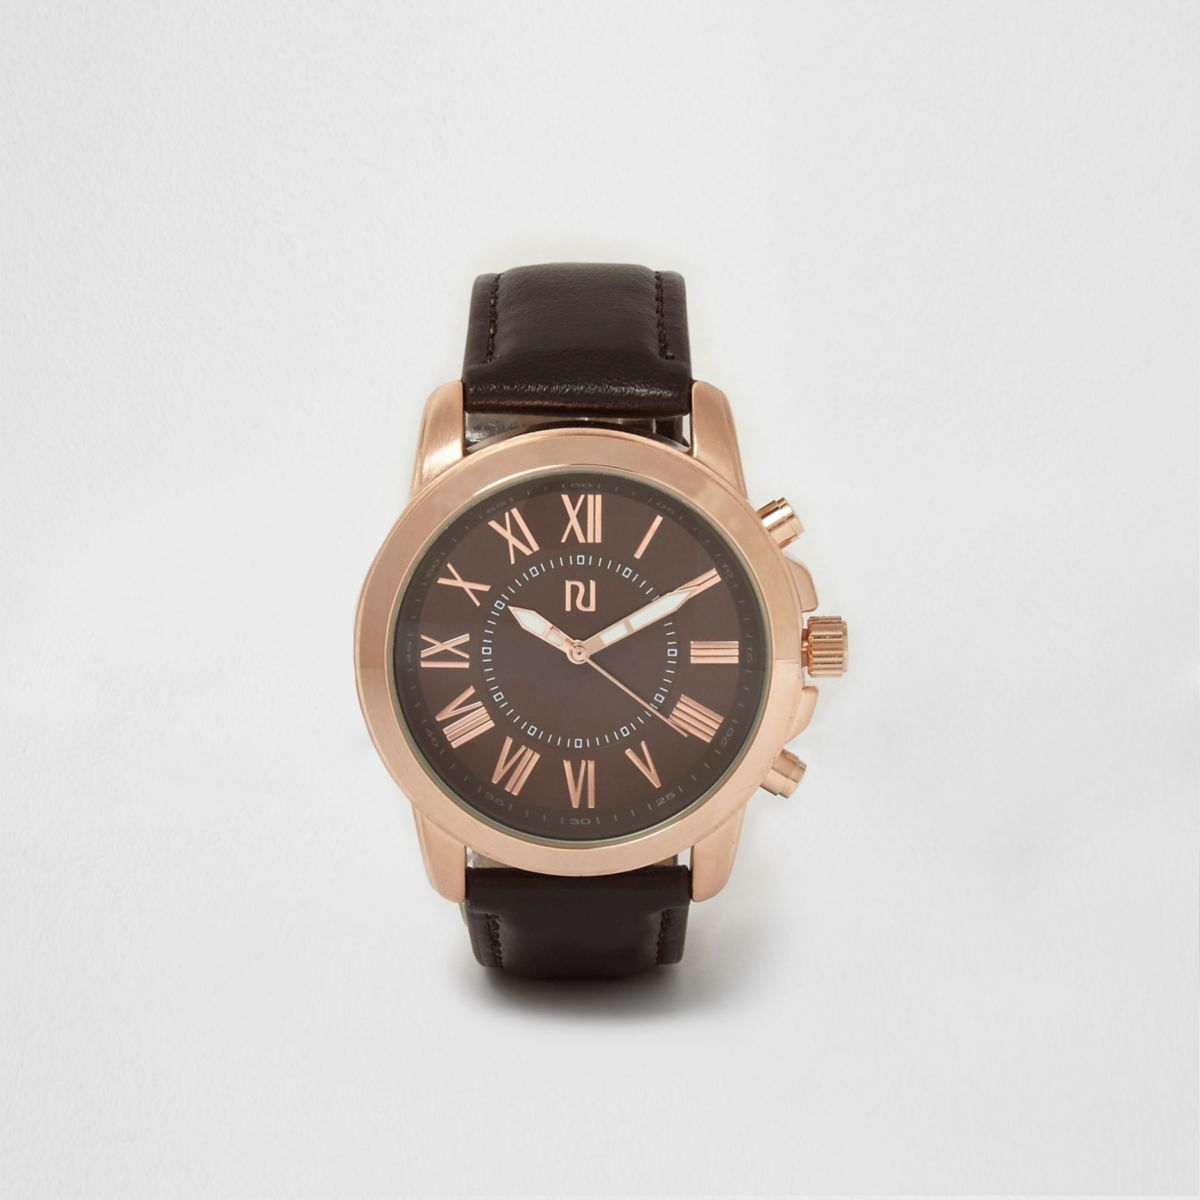 Dark brown and rose gold round face watch